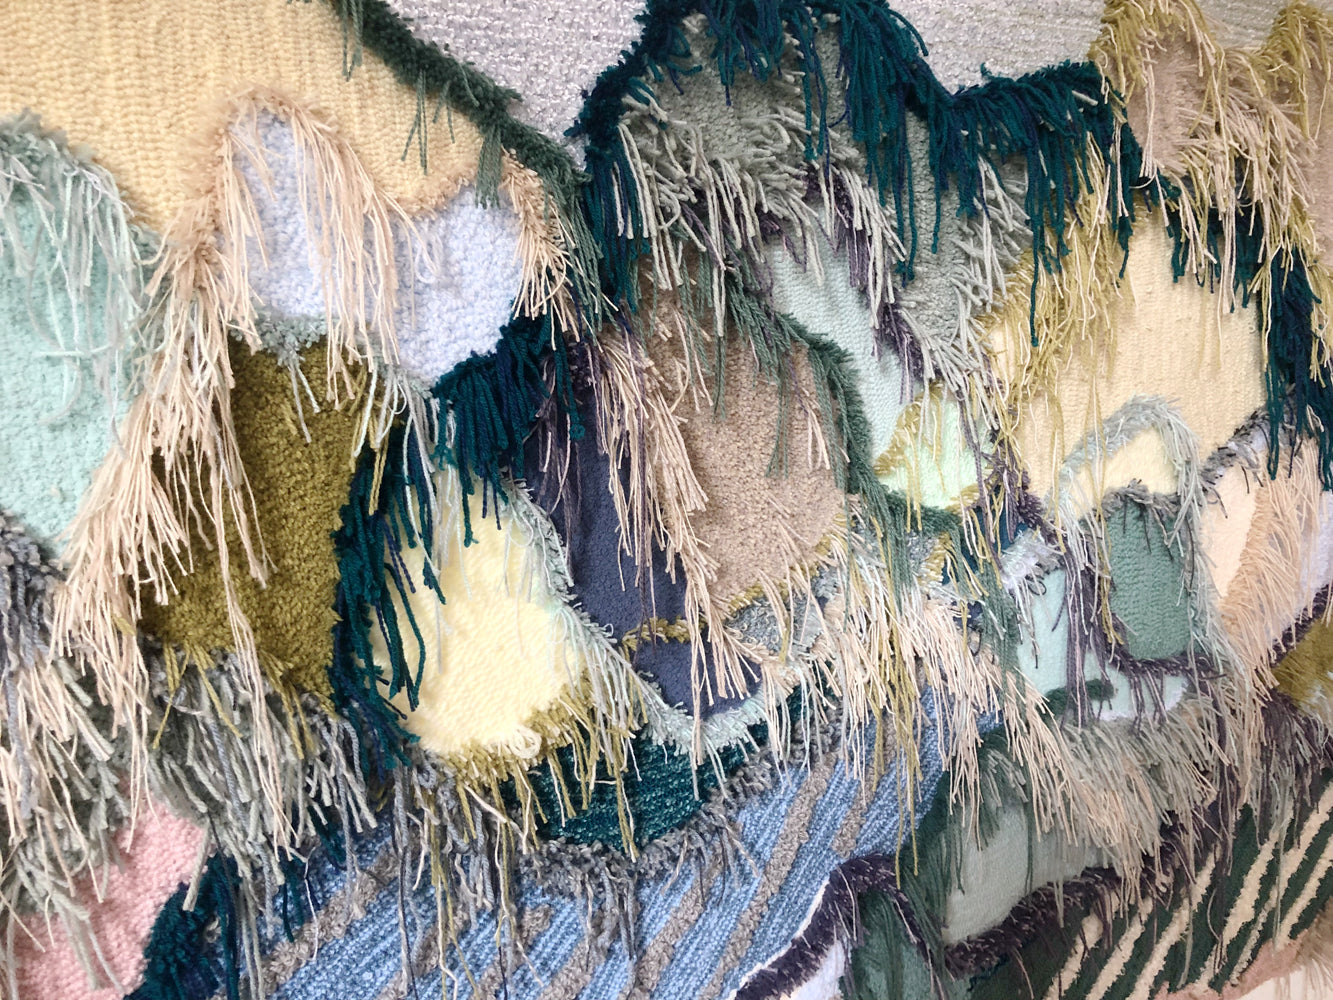 trish andersen studio large scale fiber art landscape inspired close up